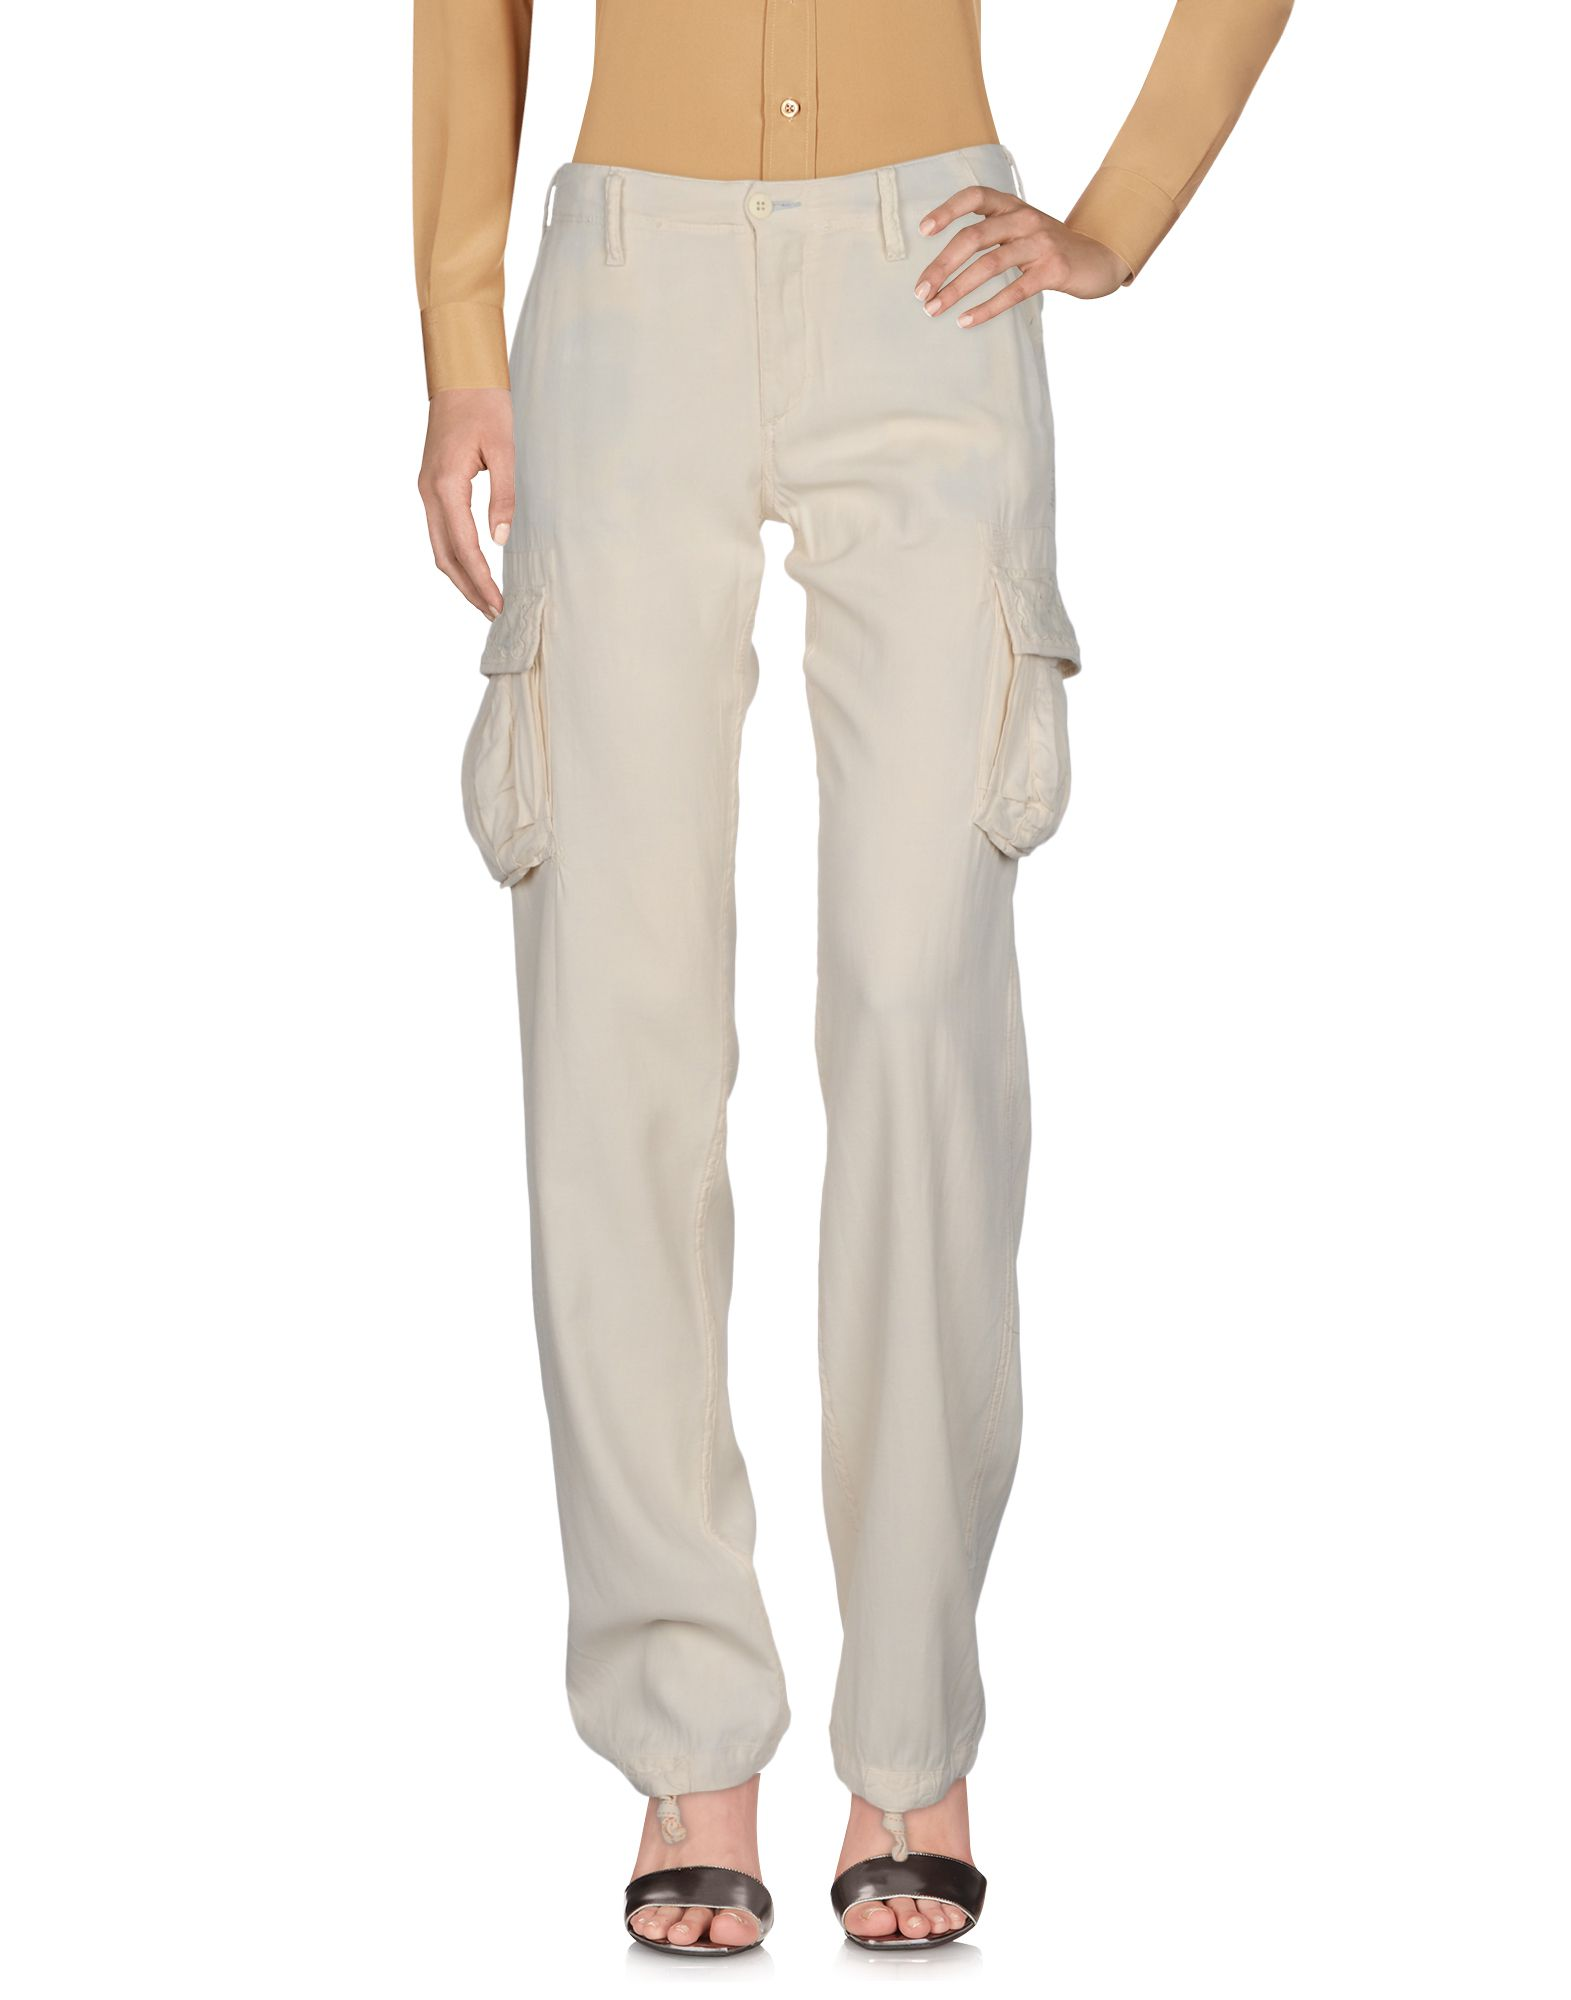 MASON'S Casual Pants in Ivory